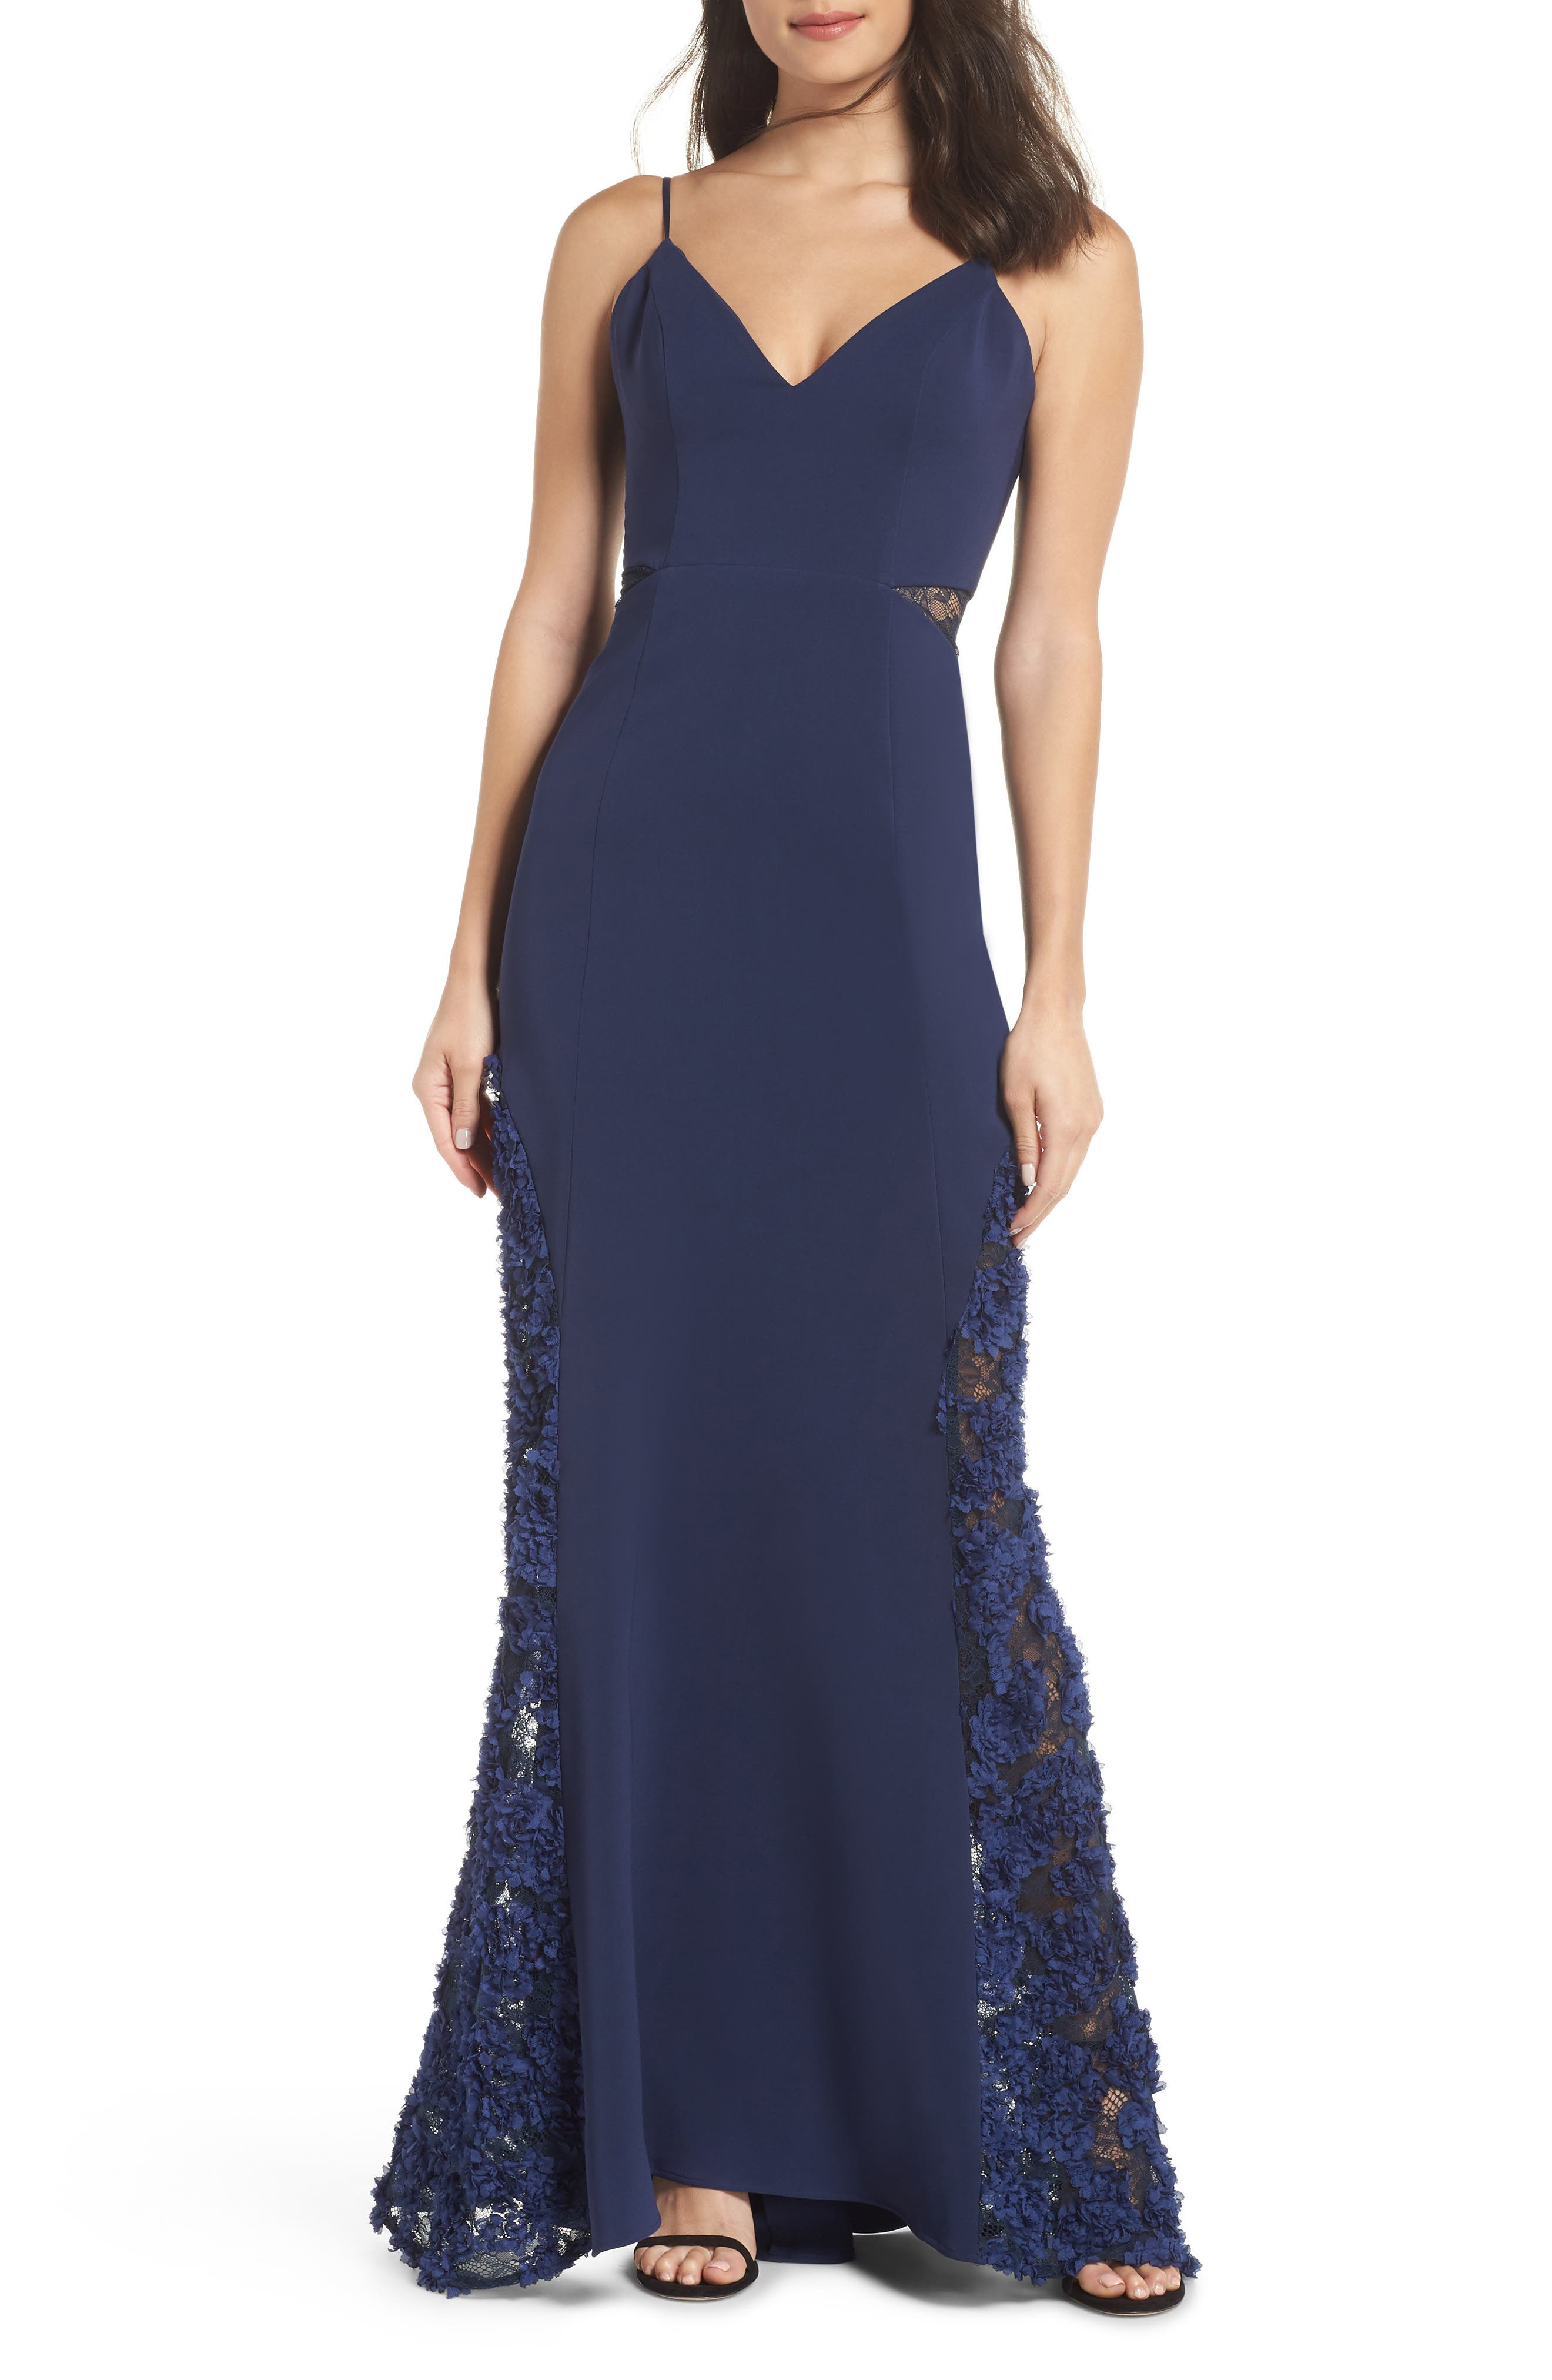 Shannon Lace Inset Gown,                             Main thumbnail 1, color,                             DARK NAVY